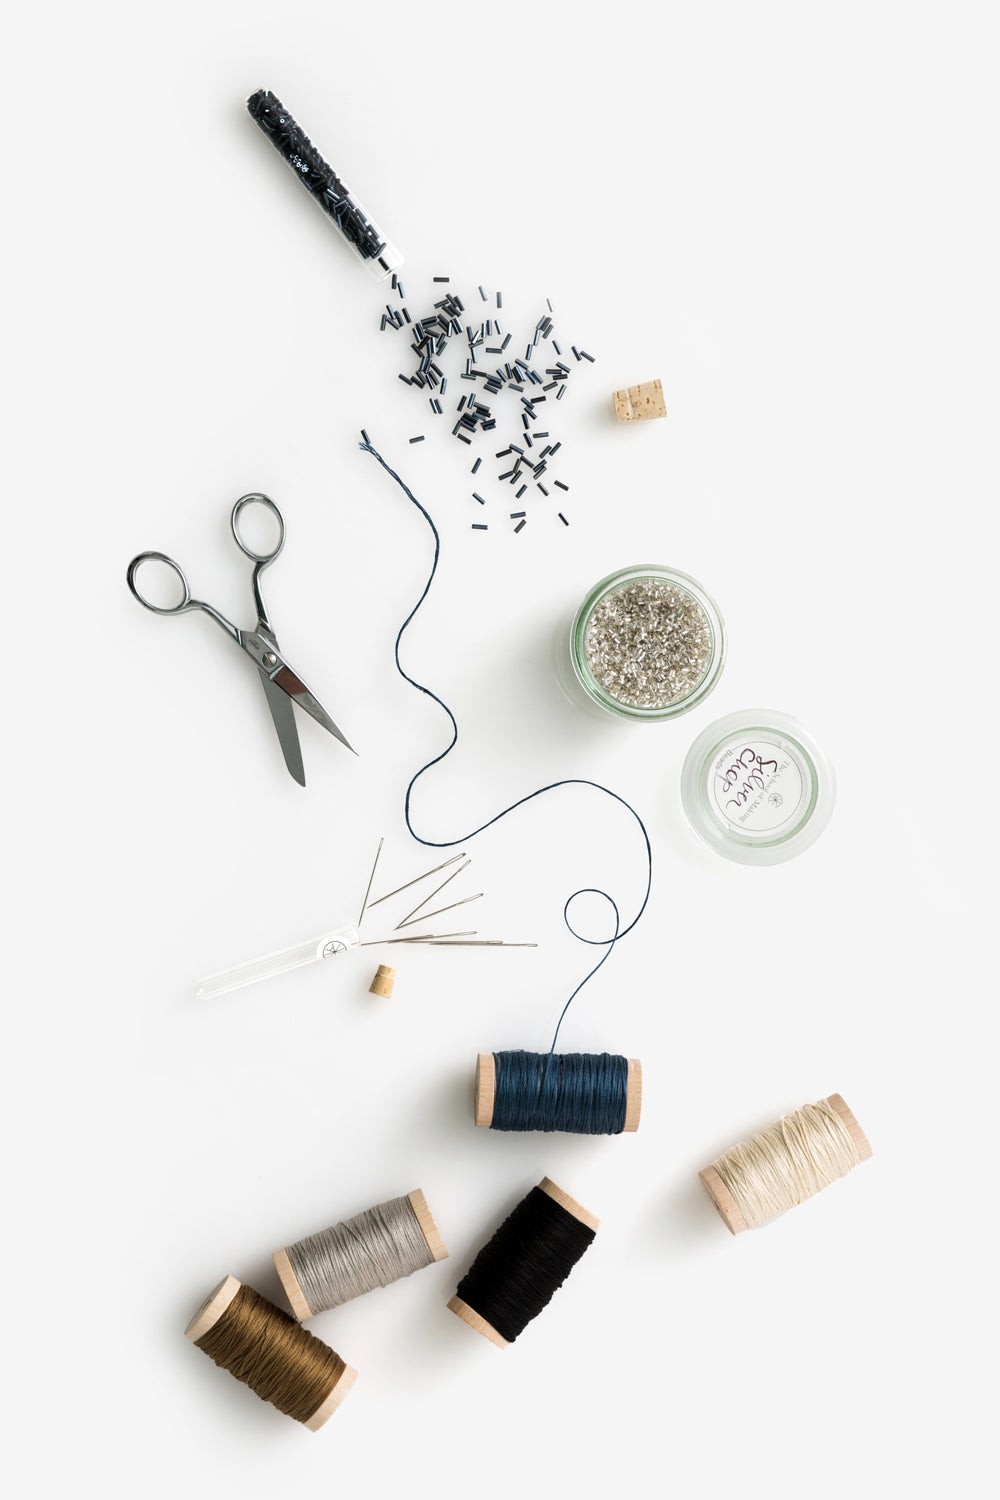 The School of Making Embroidery Floss on Wooden Spools and Maker Supplies